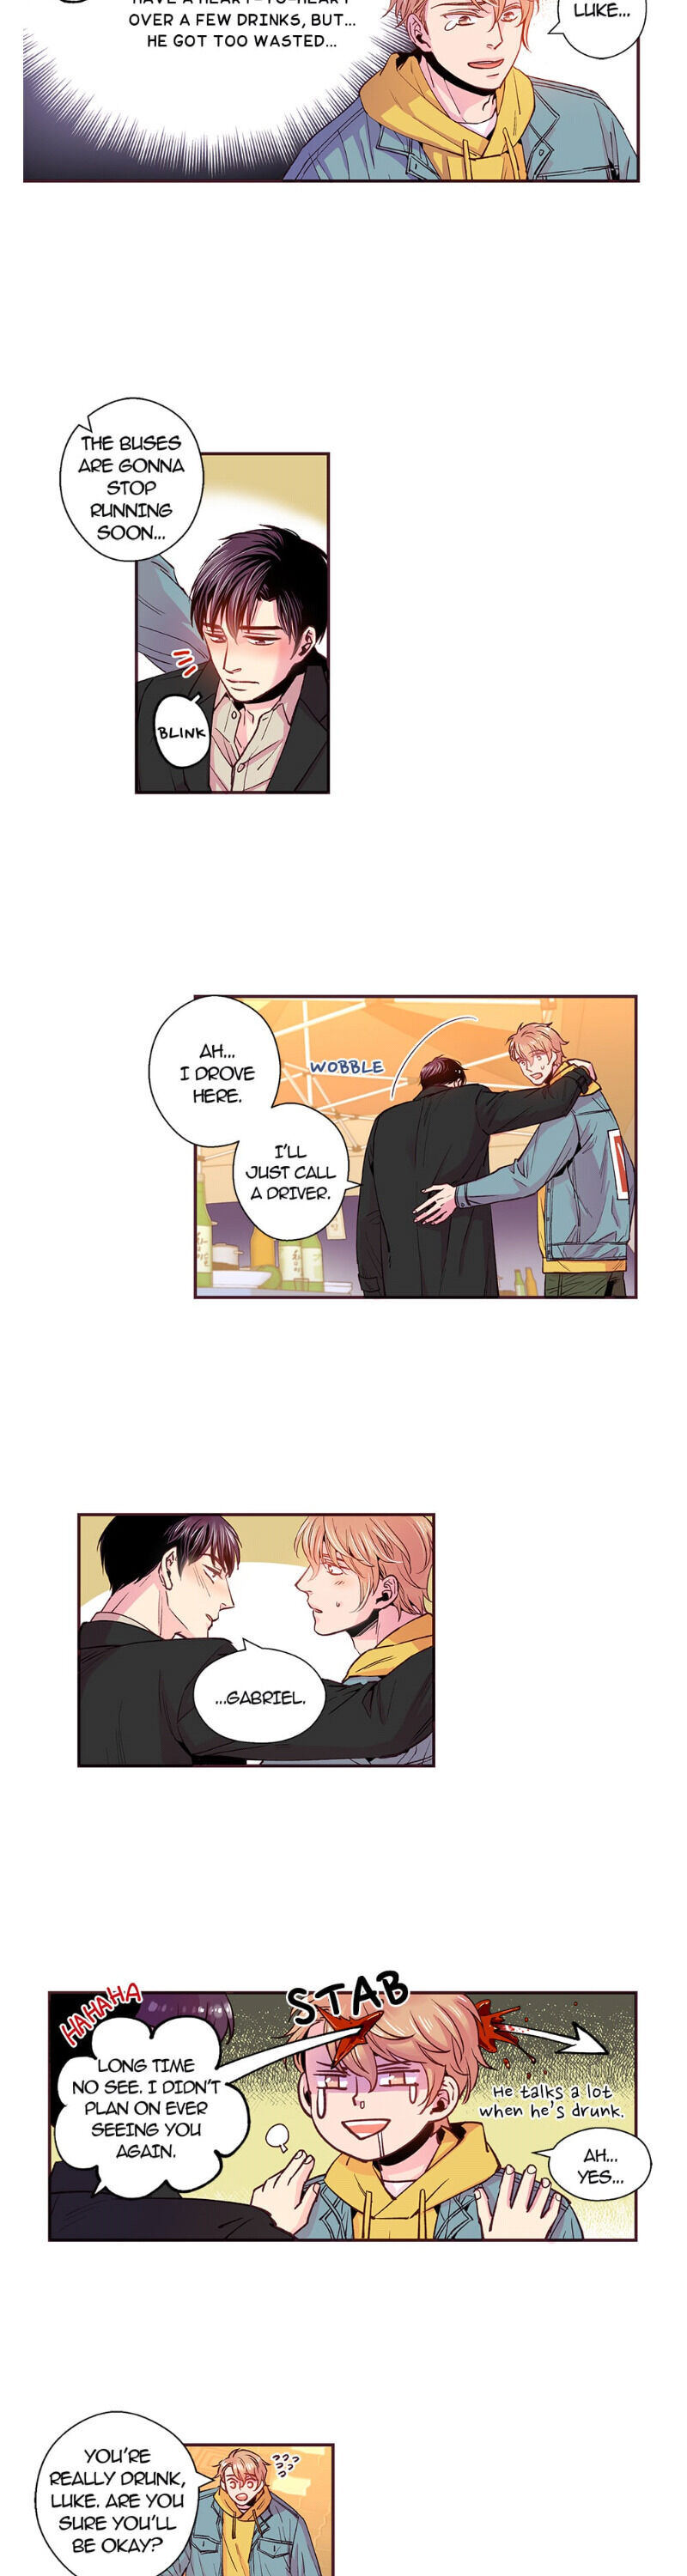 Talk To Me Tenderly - chapter 35 - #3